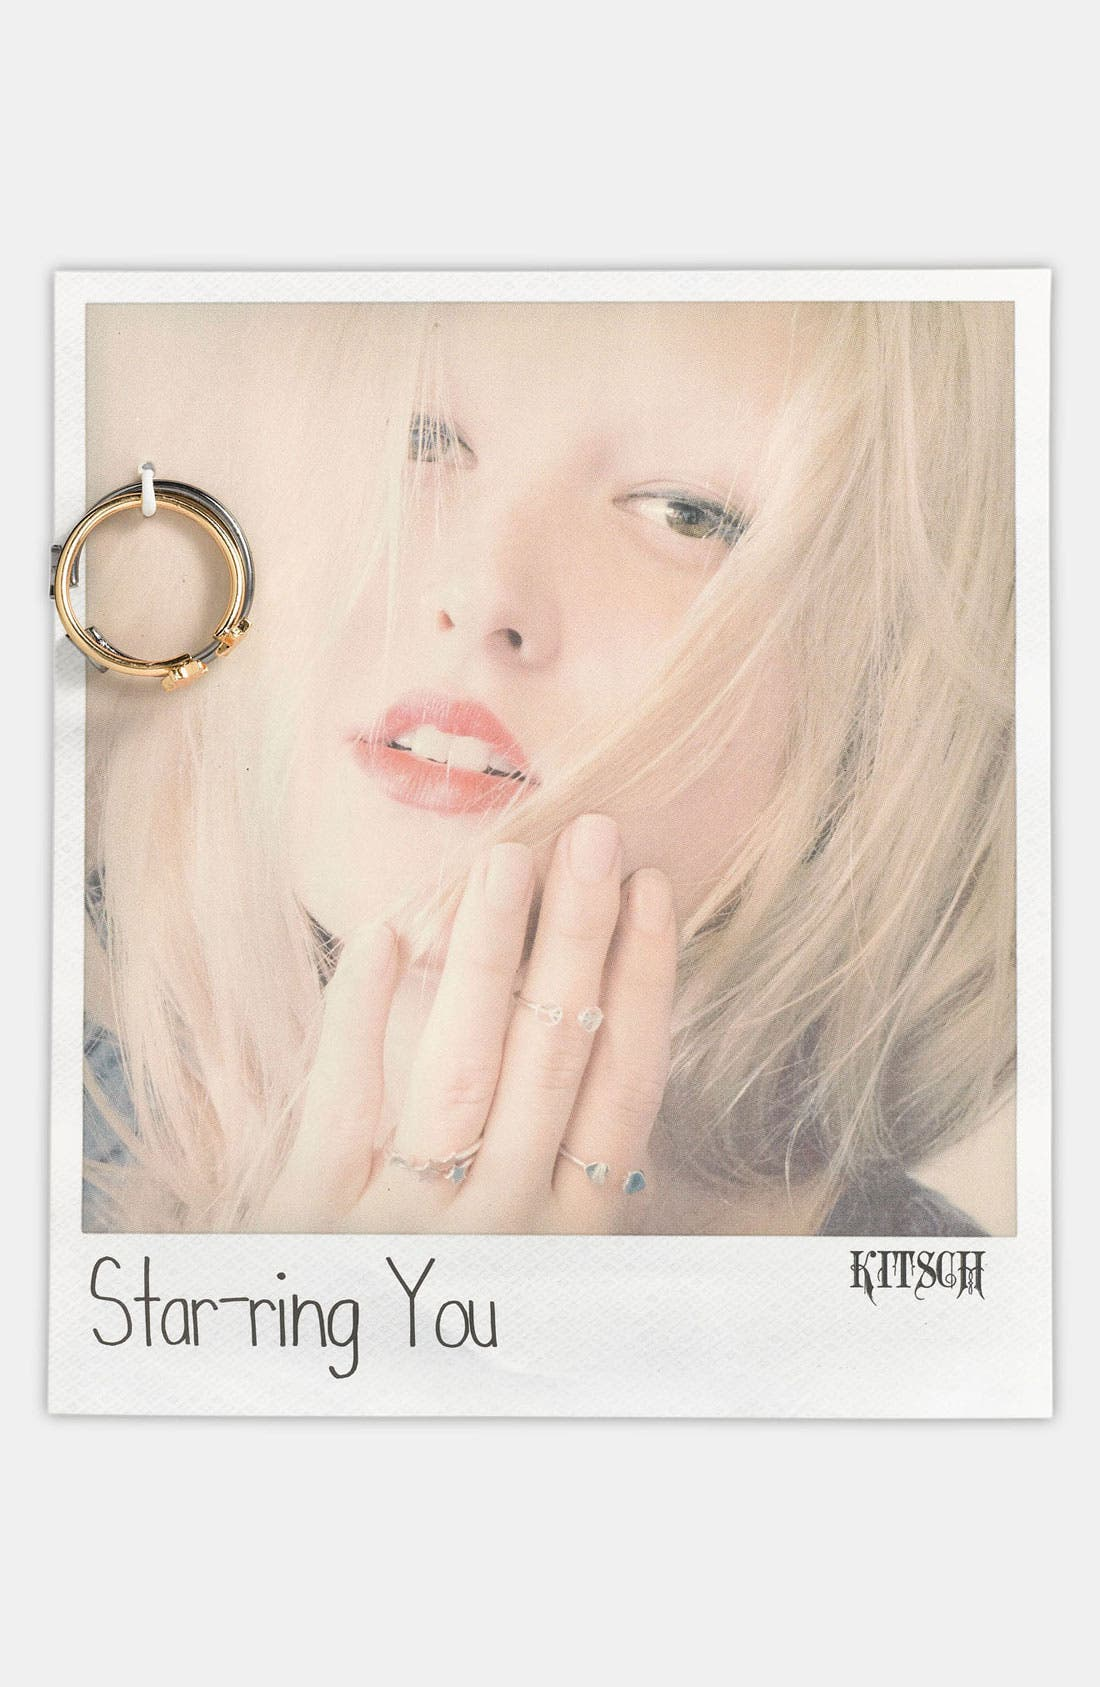 Alternate Image 1 Selected - Kitsch 'Star-ring You' Adjustable Rings